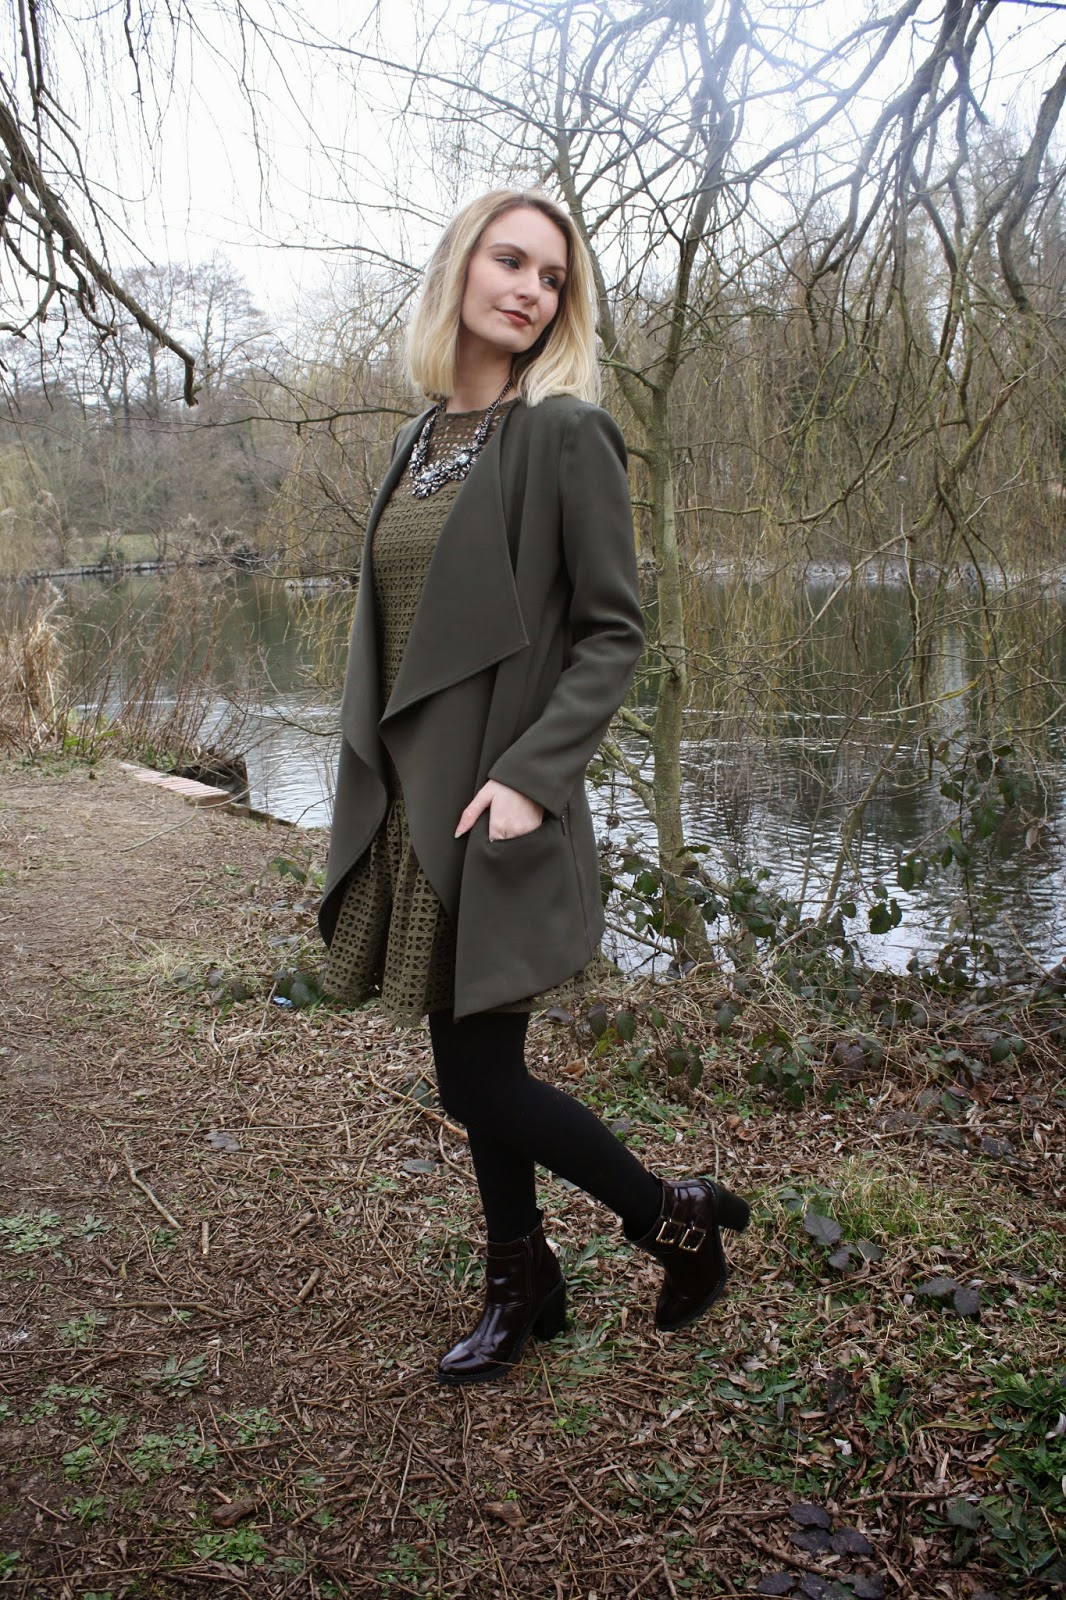 khaki crochet ASOS dress, dorothy perkins waterfall jacket, military, utility, burgundy buckled Missguided boots, statement necklace, phase eight, ss15, trend, great brisith weather